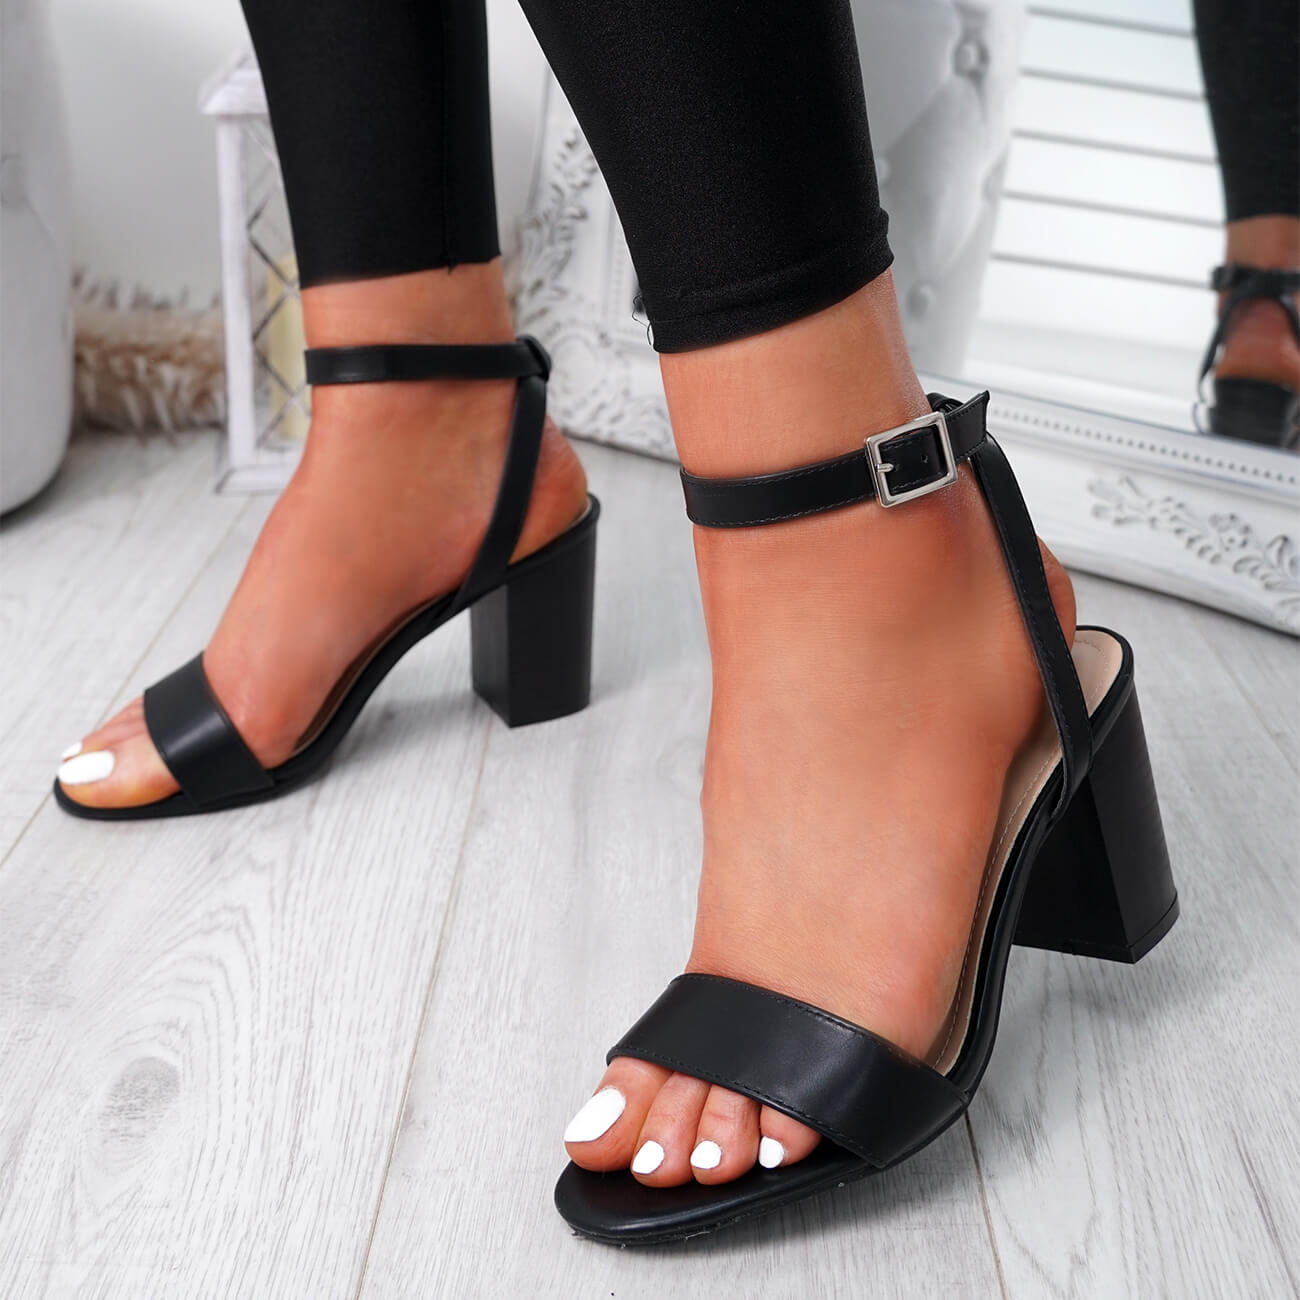 WOMENS-LADIES-PEEP-TOE-HIGH-BLOCK-HEEL-SANDALS-ANKLE-STRAP-PARTY-SHOES-SIZE thumbnail 8